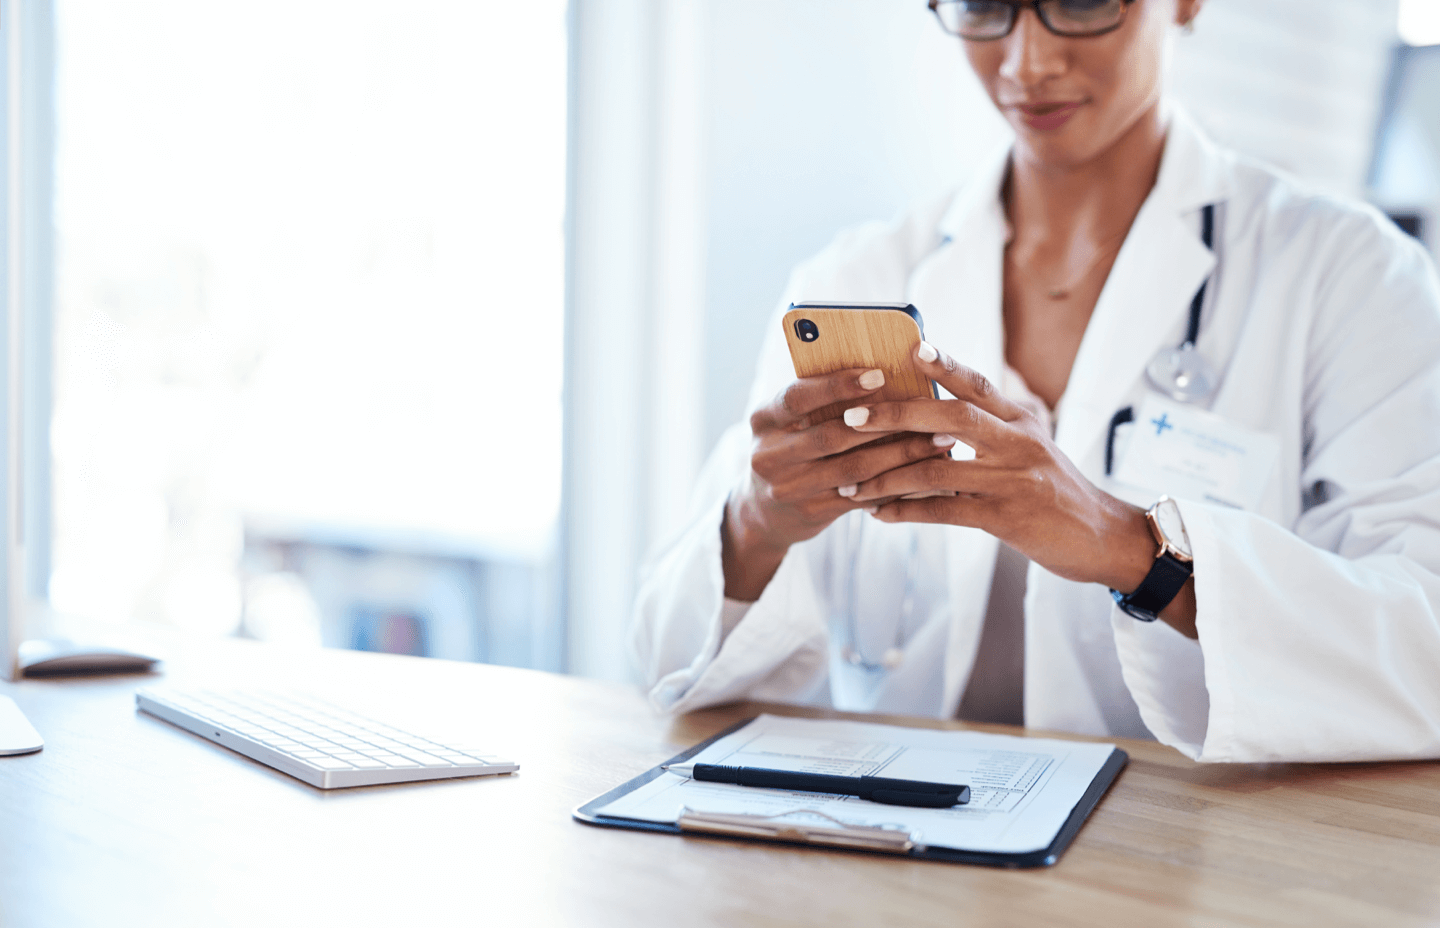 Clinic doctor texting patient back